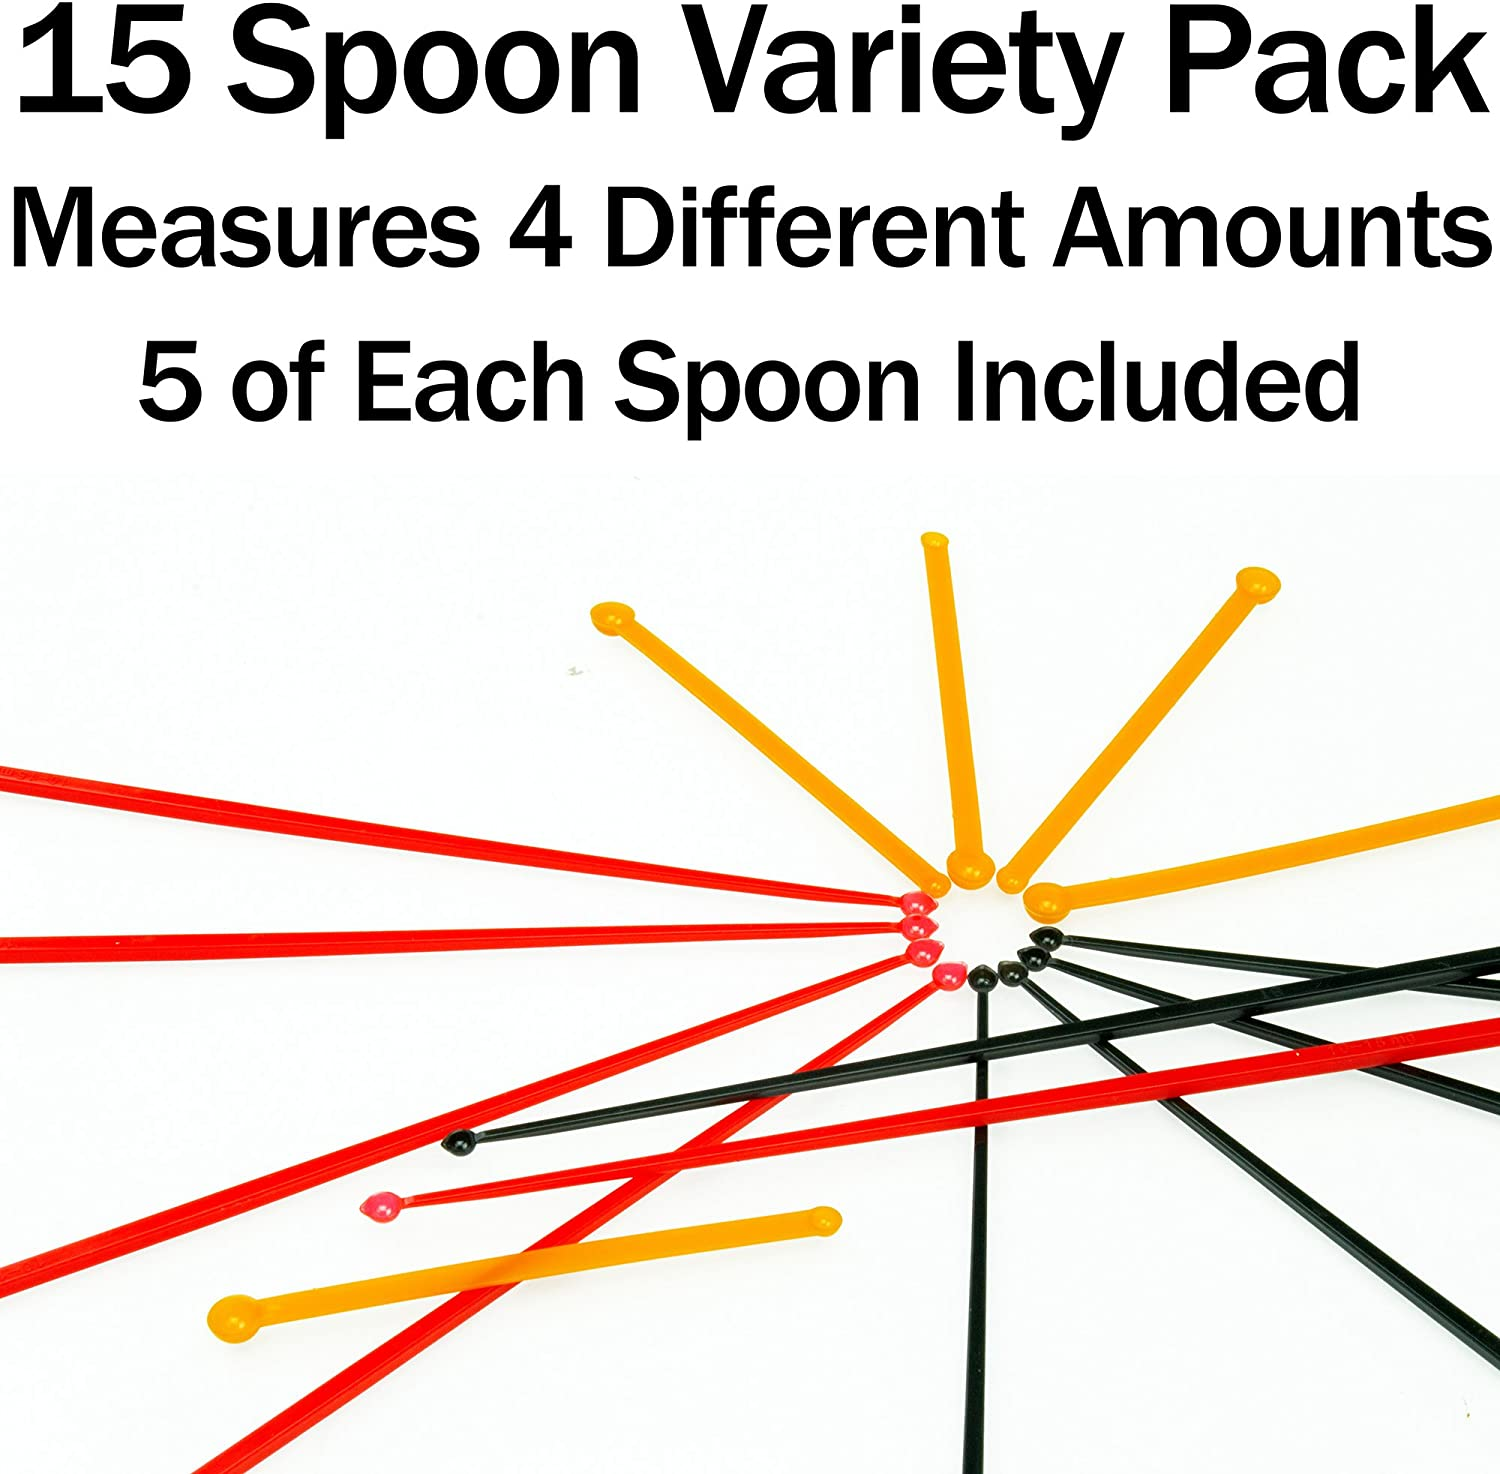 Sturdy For Easy 30 Mg Measuring Spoons 15 Pack Mess-Free Nootropic Supplement Powder Measurement 3 Sizes x 5 of Each Size Tiny Spoon. SuperDosing Static-Free Micro Scoop Variety Pack 6 Milligram